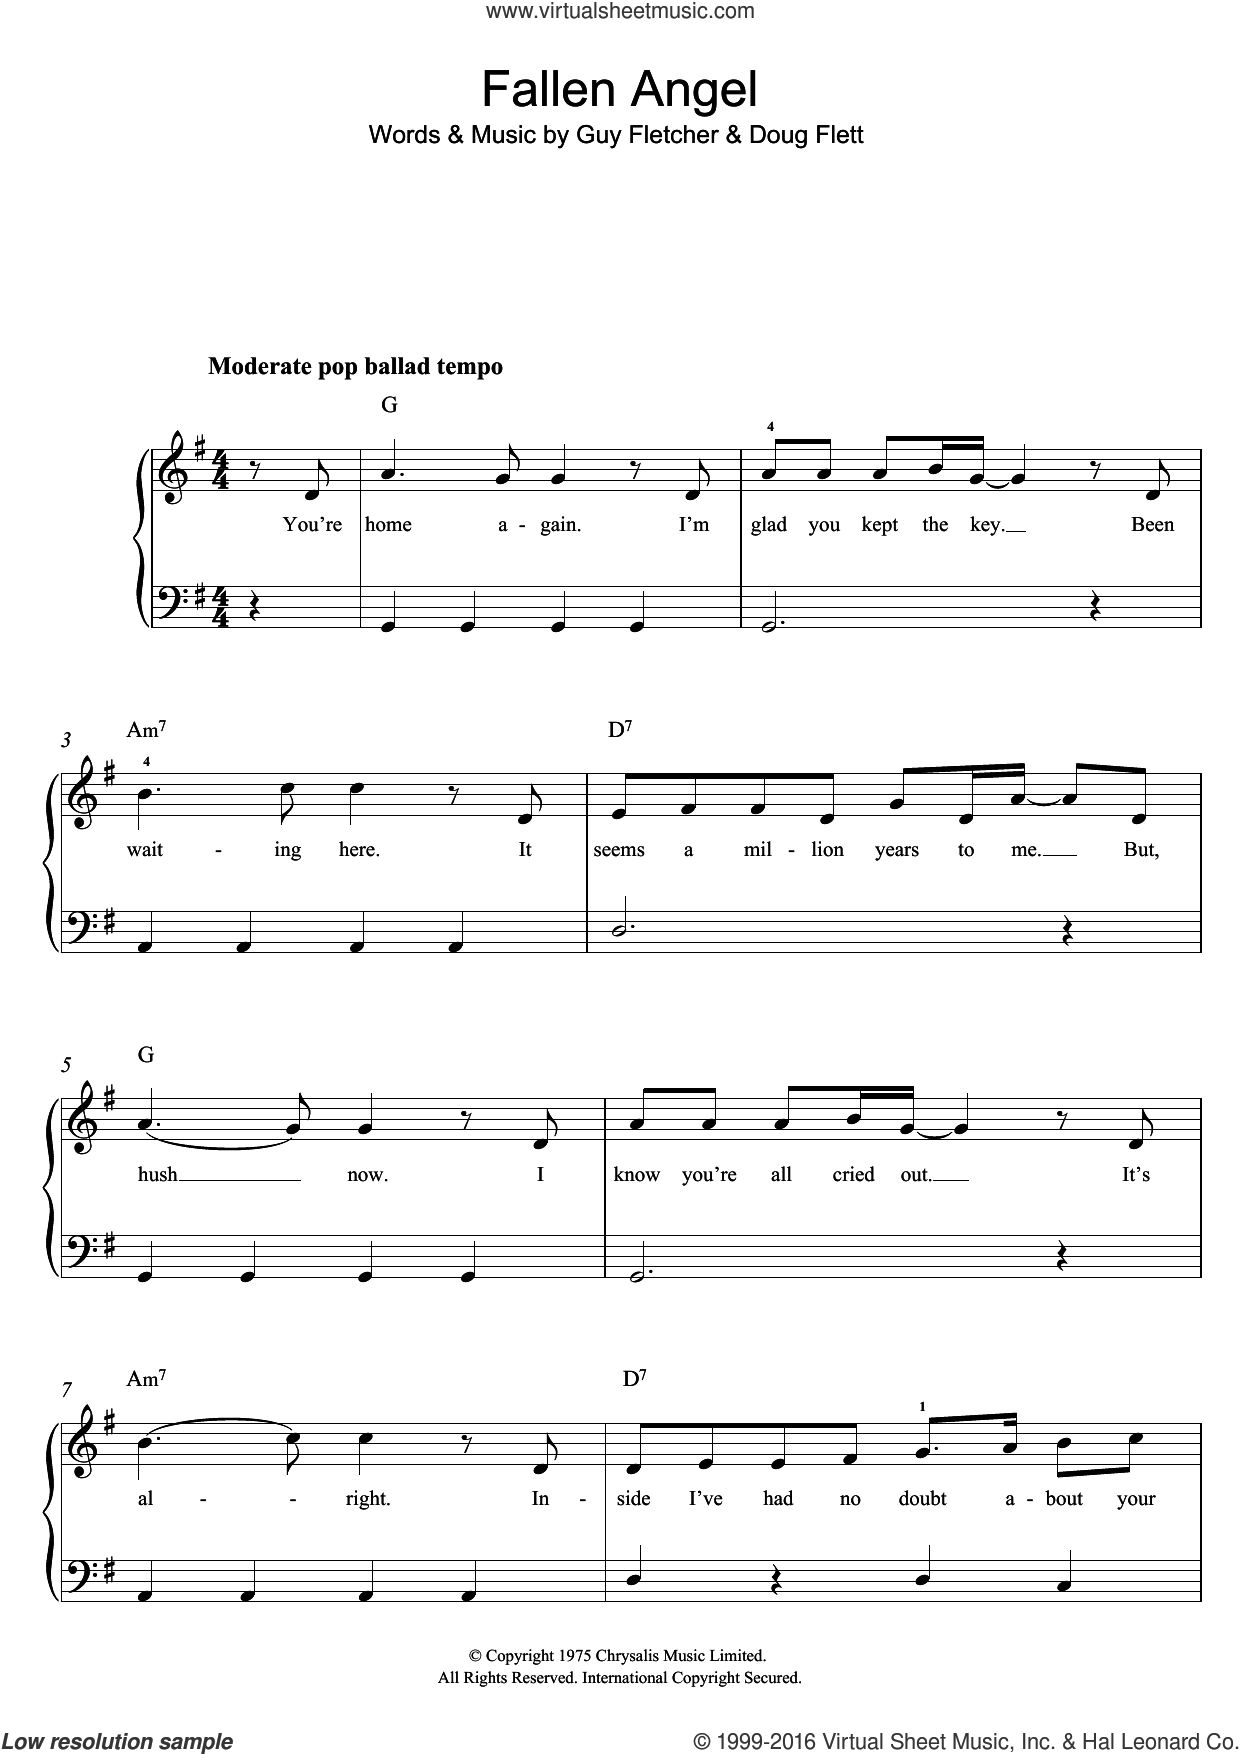 Fallen Angel sheet music for piano solo by Frankie Valli, Doug Flett and Guy Fletcher, easy